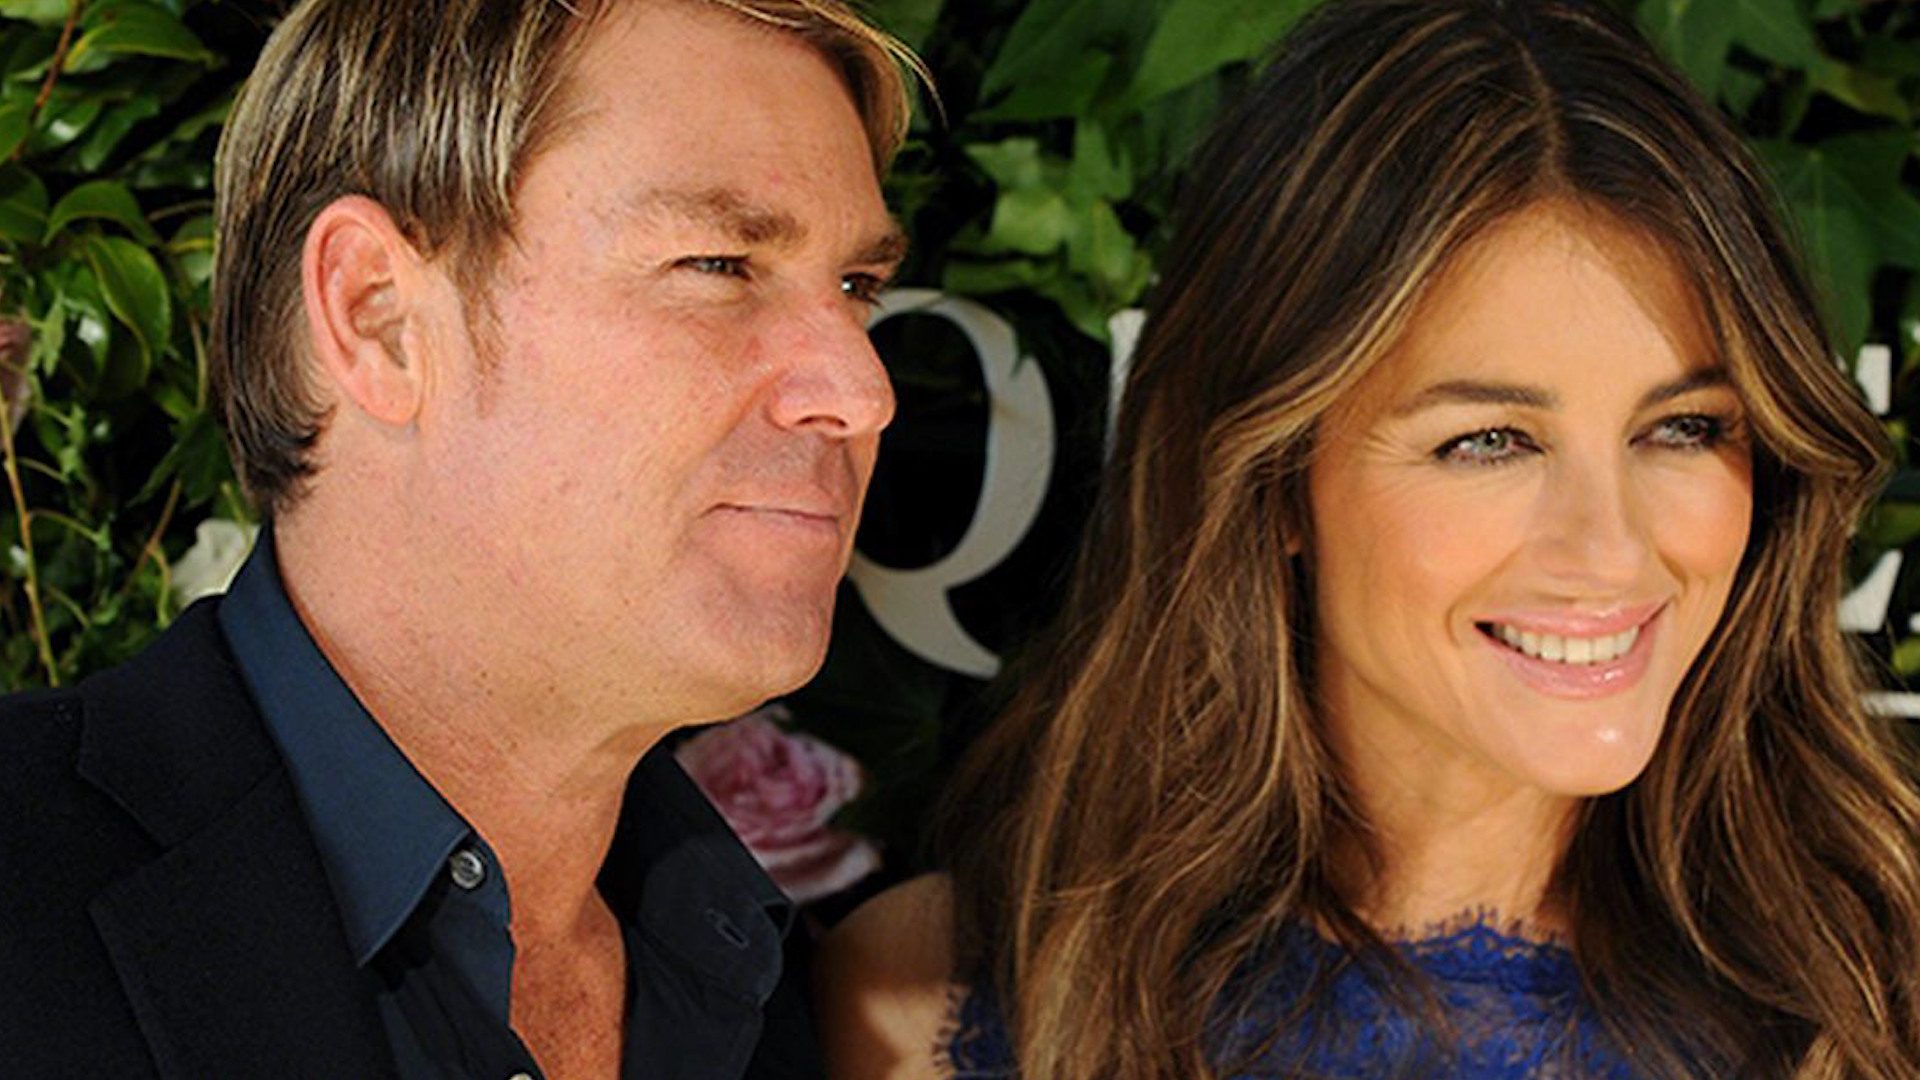 Shane Warne wants Liz Hurley's engagement ring back